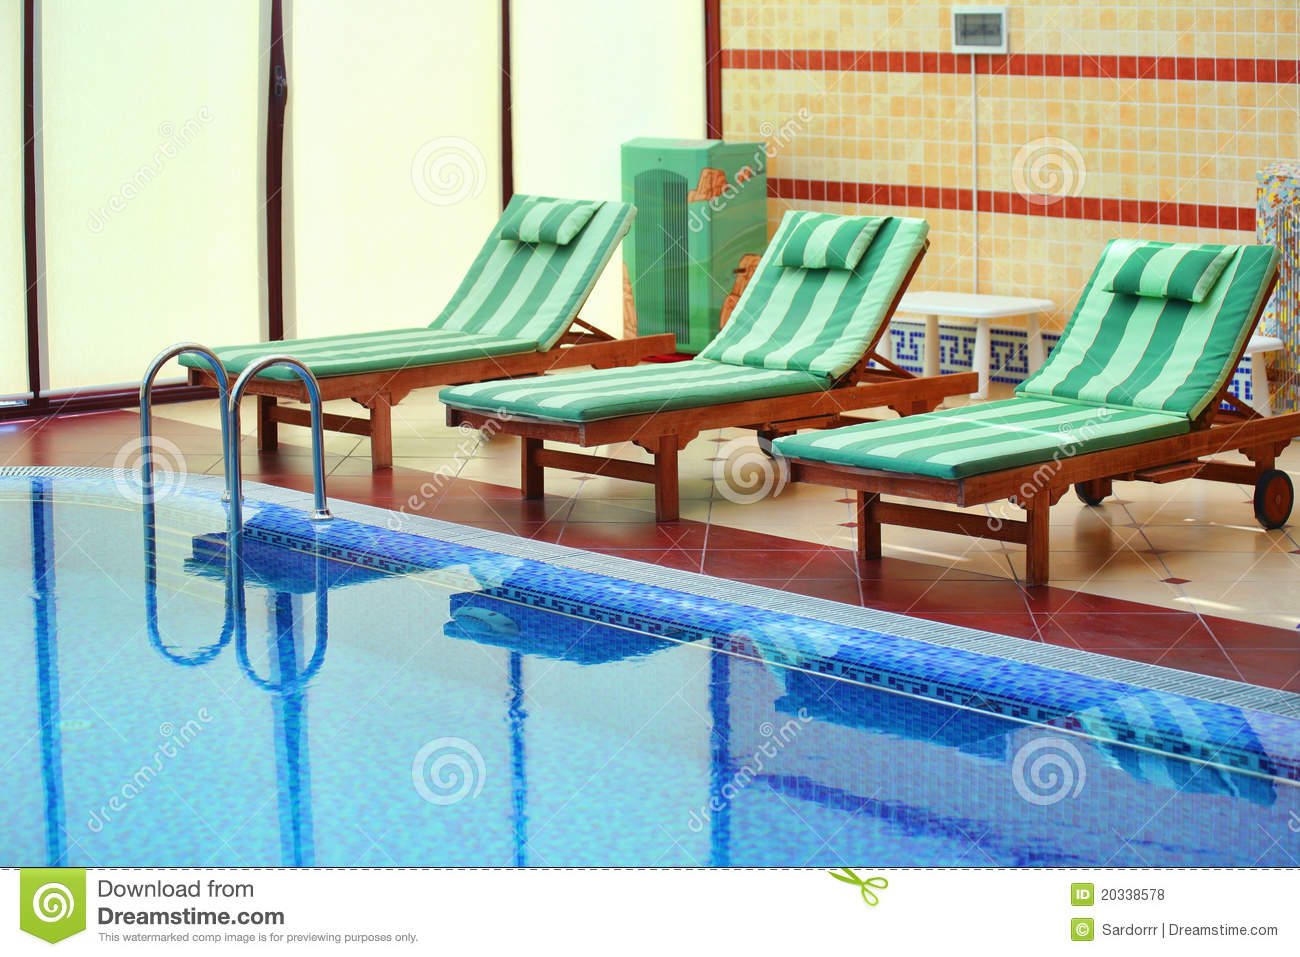 Zwembad Bed Tiled Swimming Pool With Bed Chairs Royalty Free Stock